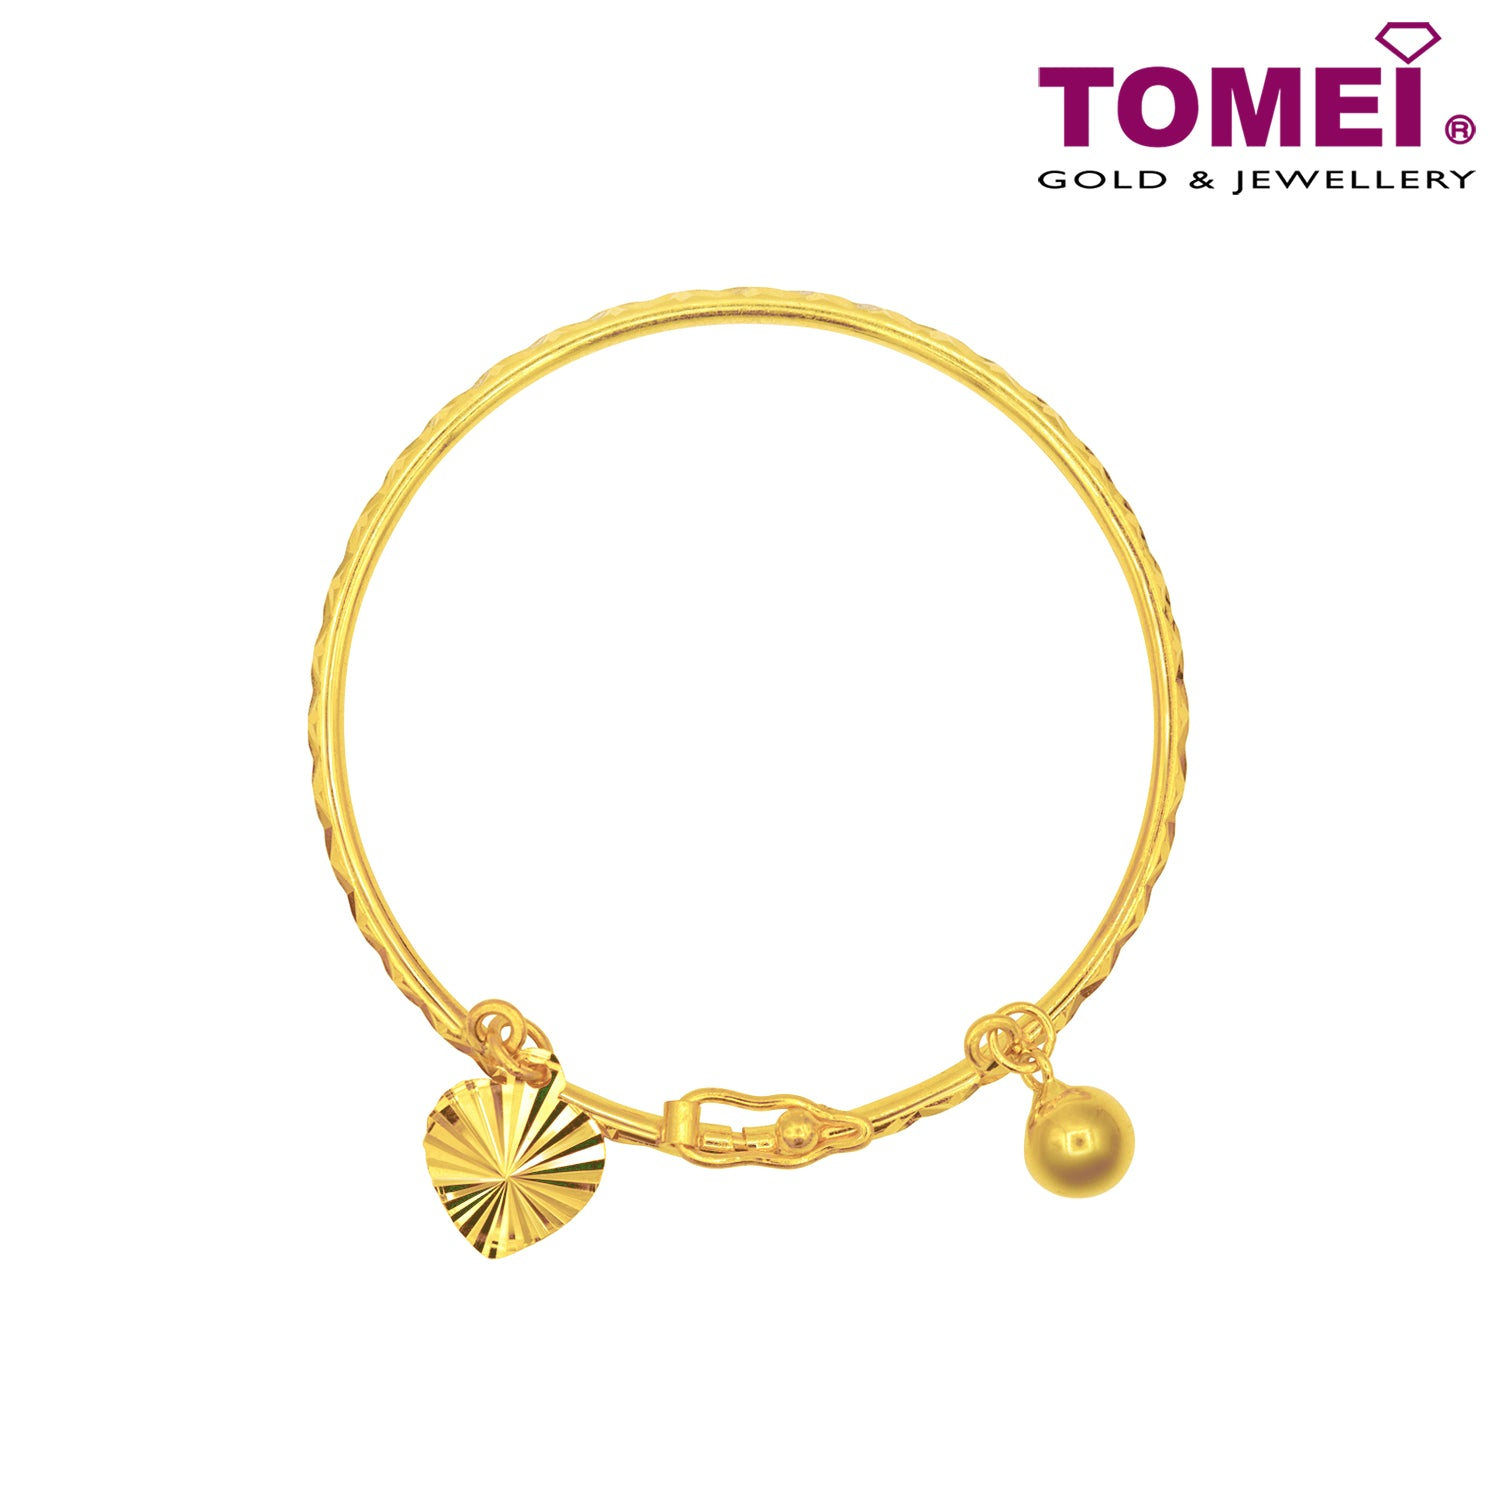 Bell Heart Baby Bangle Tomei Yellow Gold 916 22k 9l Bbse906 2c Etomei Com Tomei Gold Jewellery